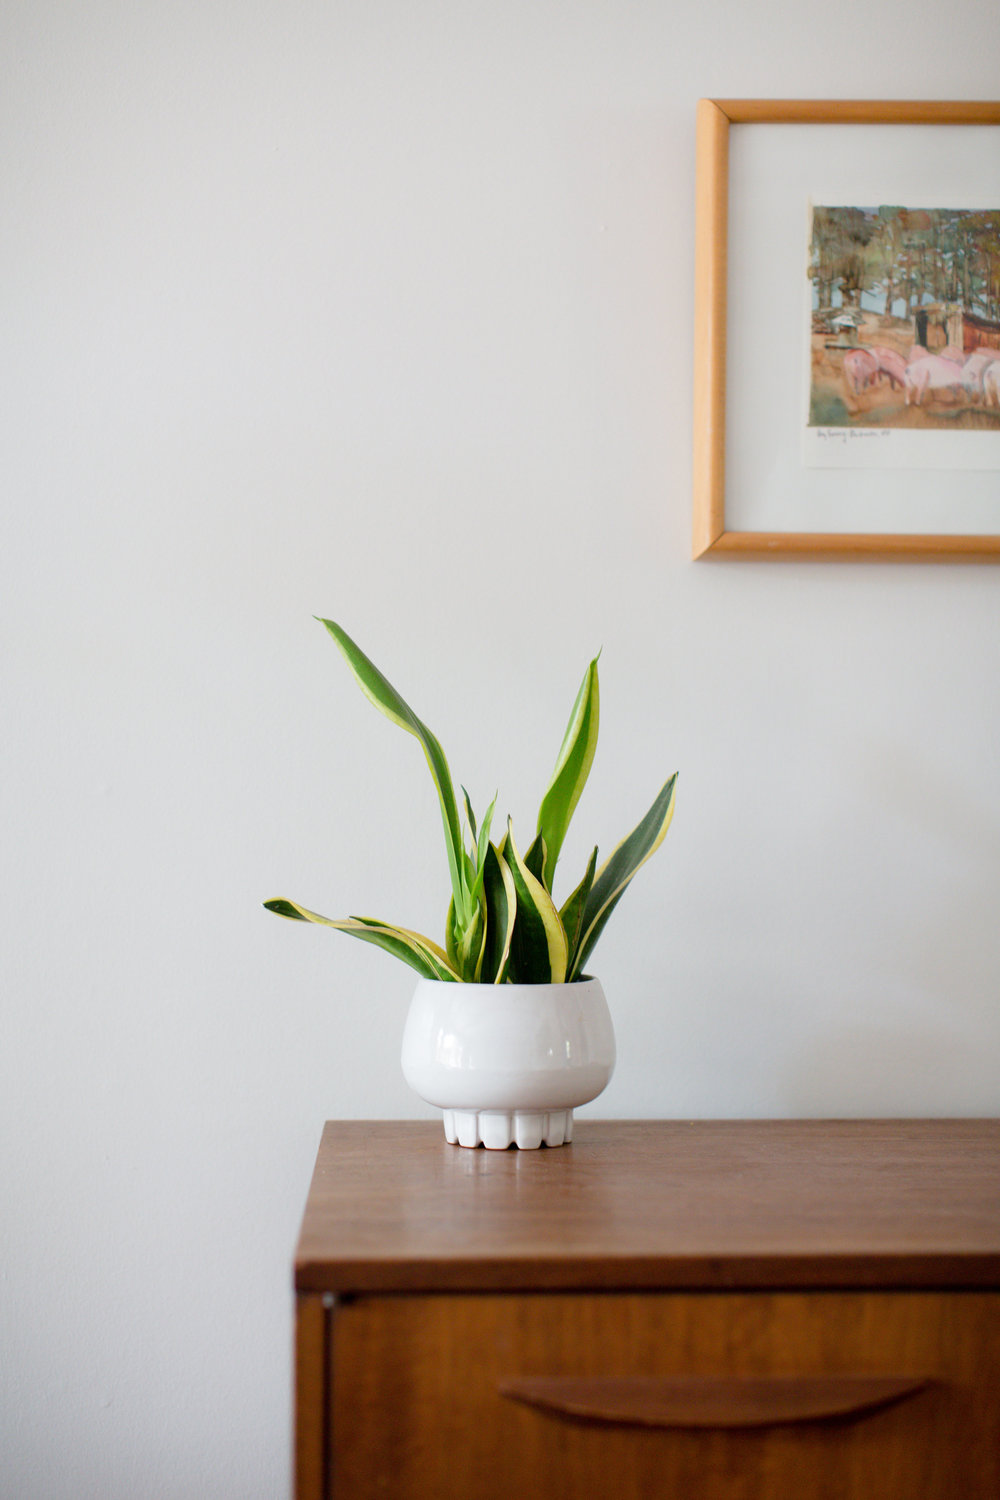 Snake plant potted in Frankoma planter in Palmer's home // Photo credit: KET Photography